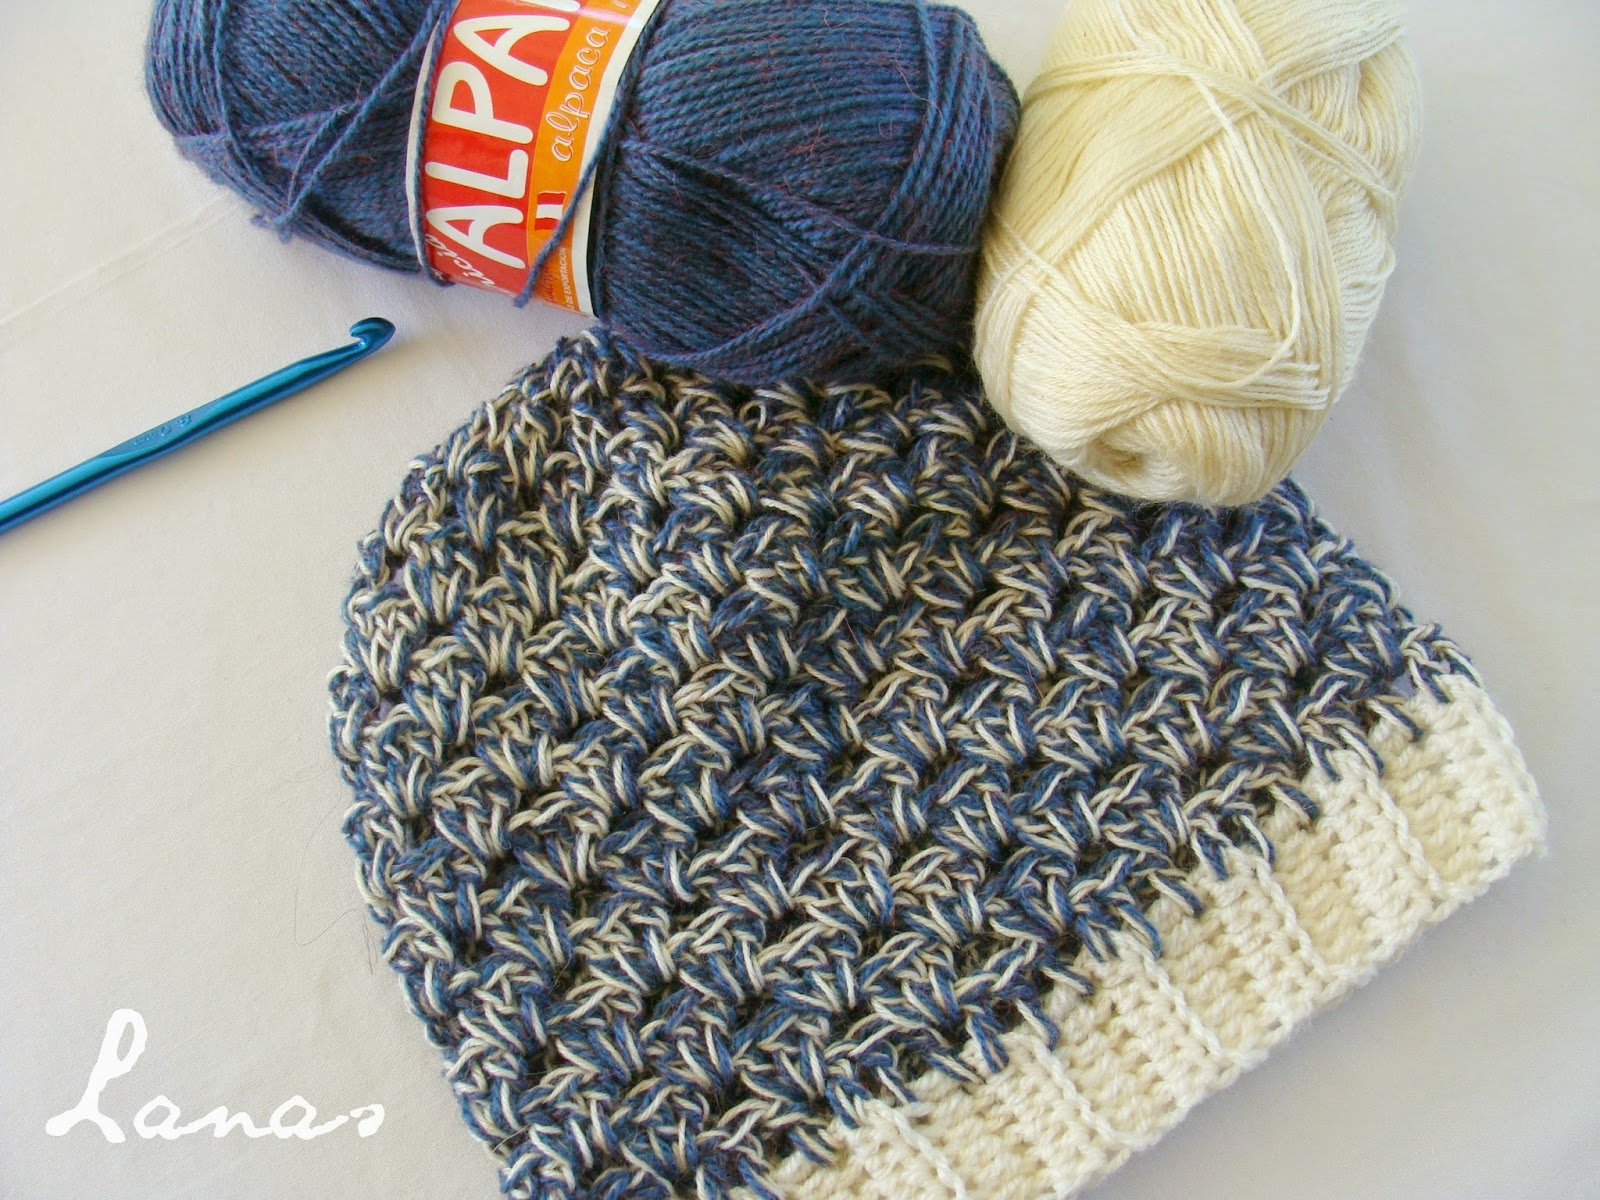 Crocheting With Two Strands Of Yarn : Lanas de Ana: Crochet Beanies and Cowls